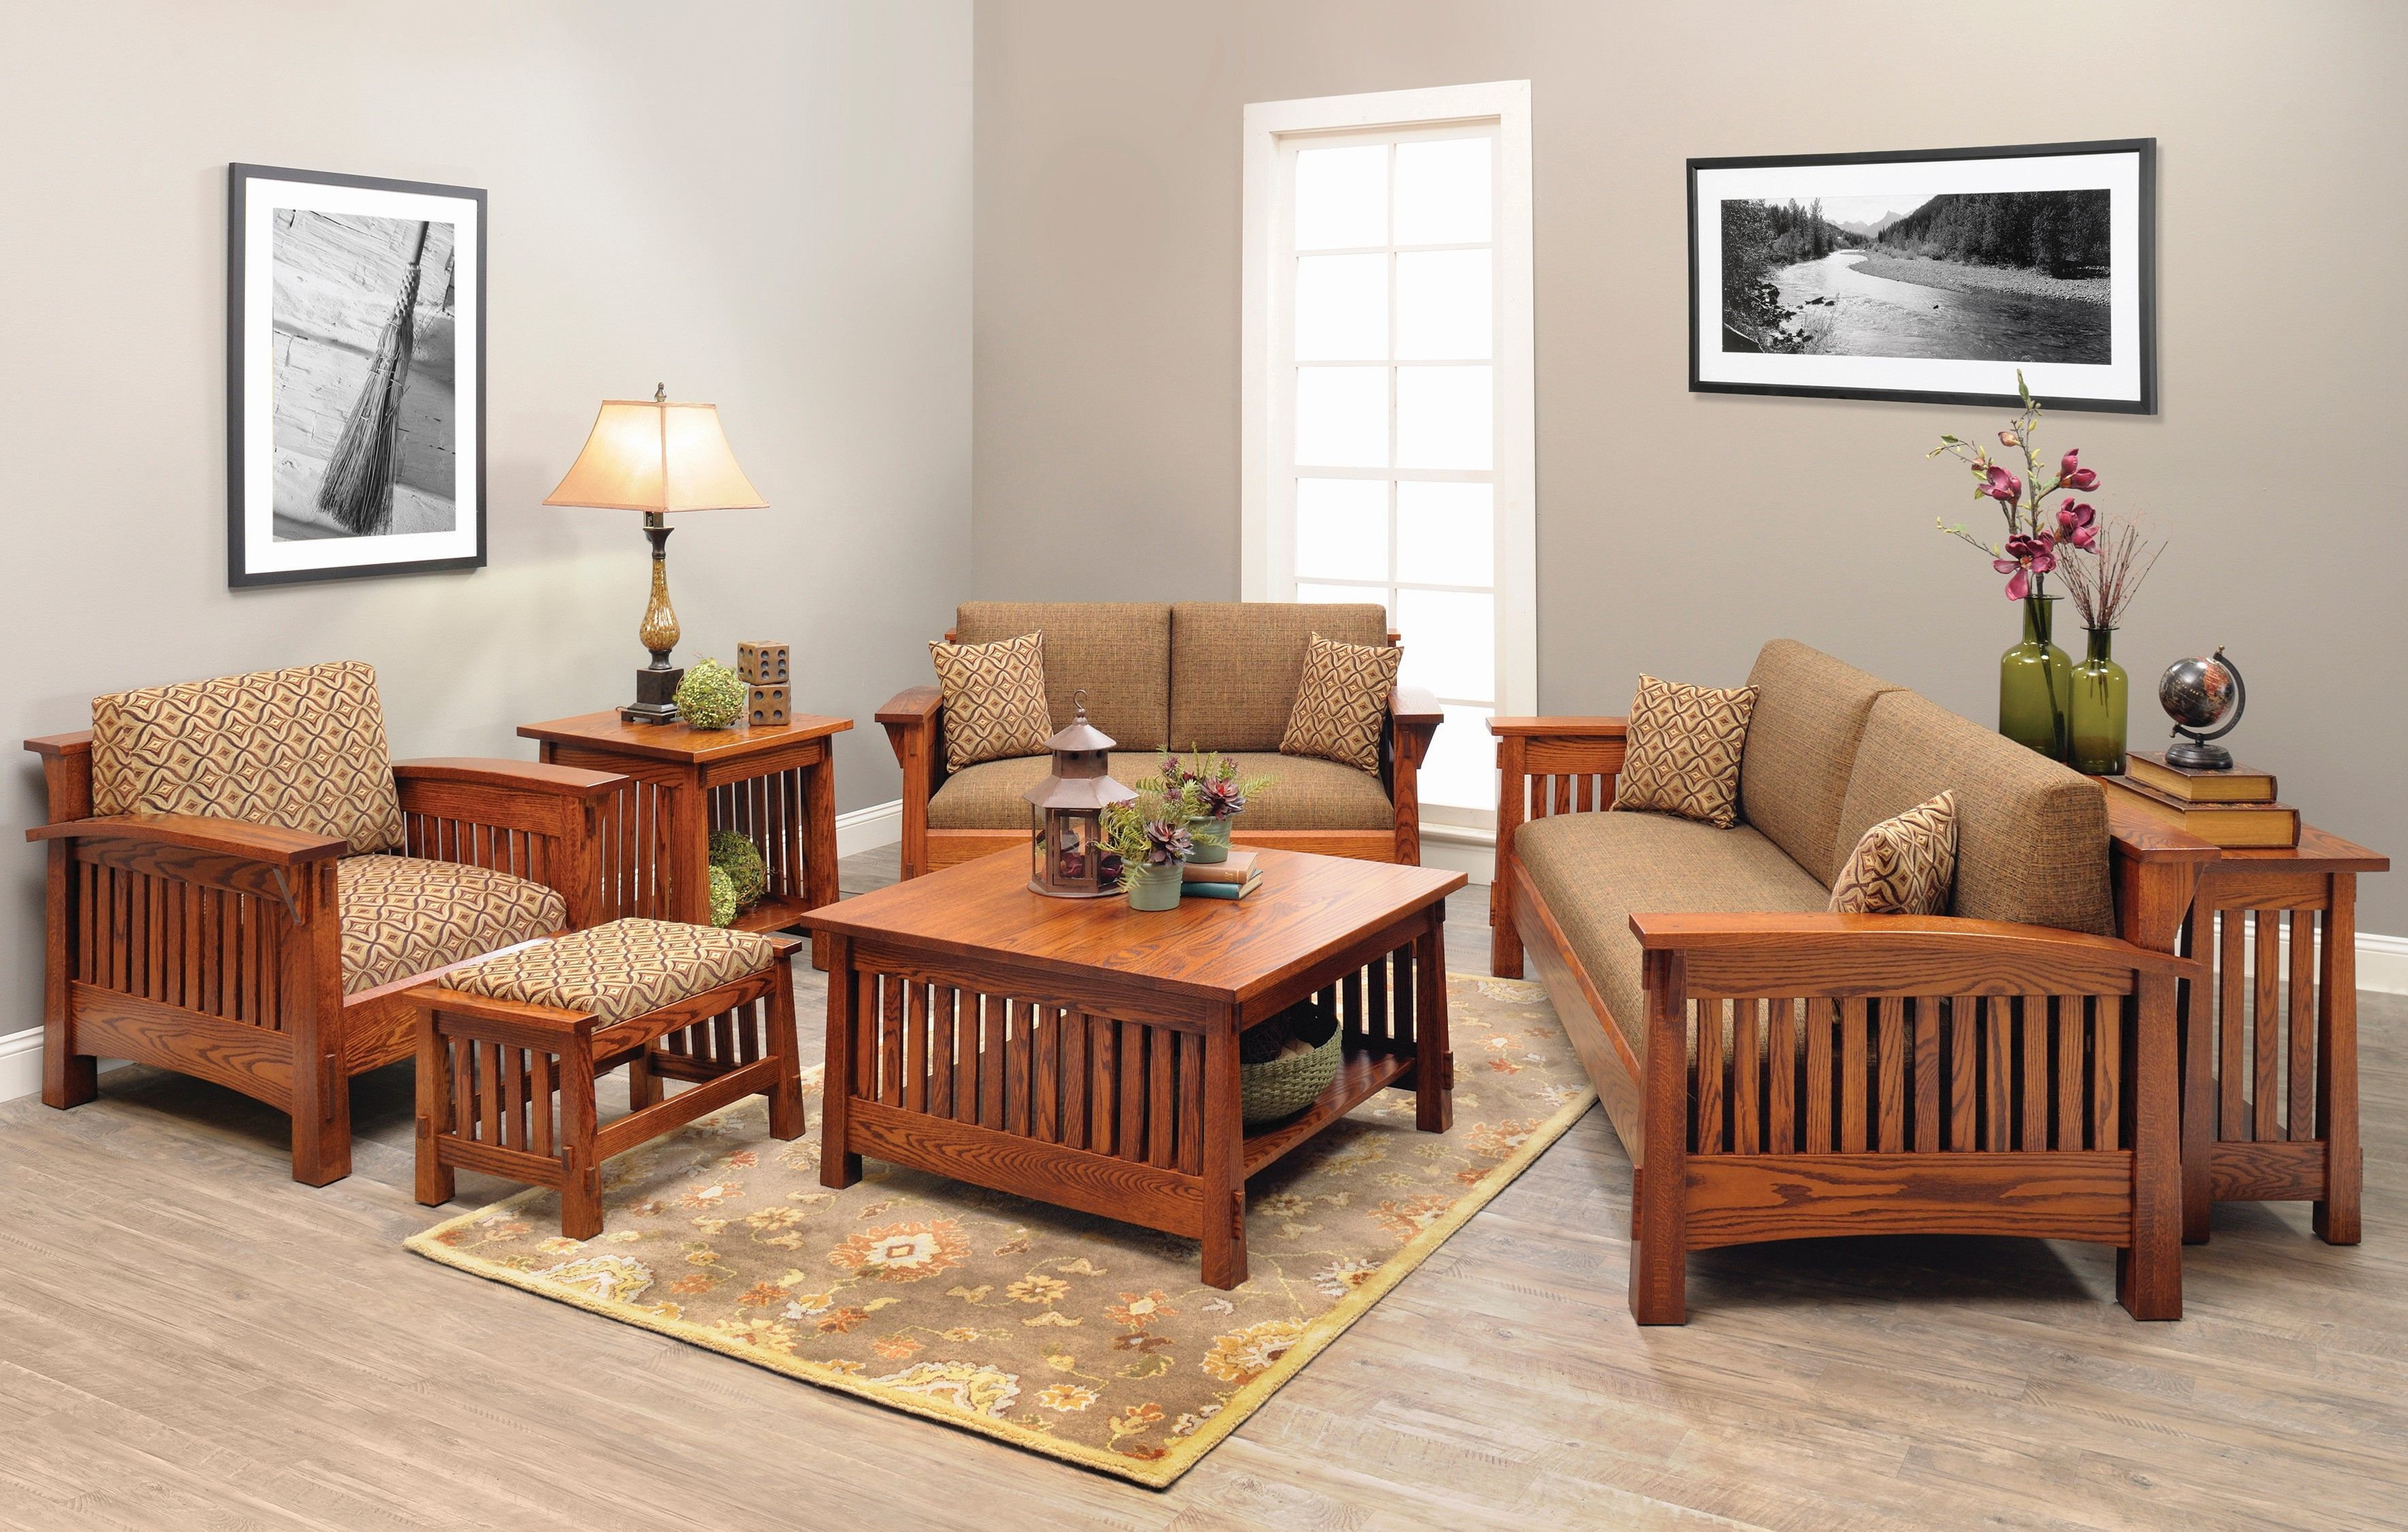 Create A Charming And Cozy Atmosphere With The Help Of Our Handcrafted Countryside Mission In 2020 Living Room Sets Furniture Living Room Sofa Set Wooden Sofa Designs